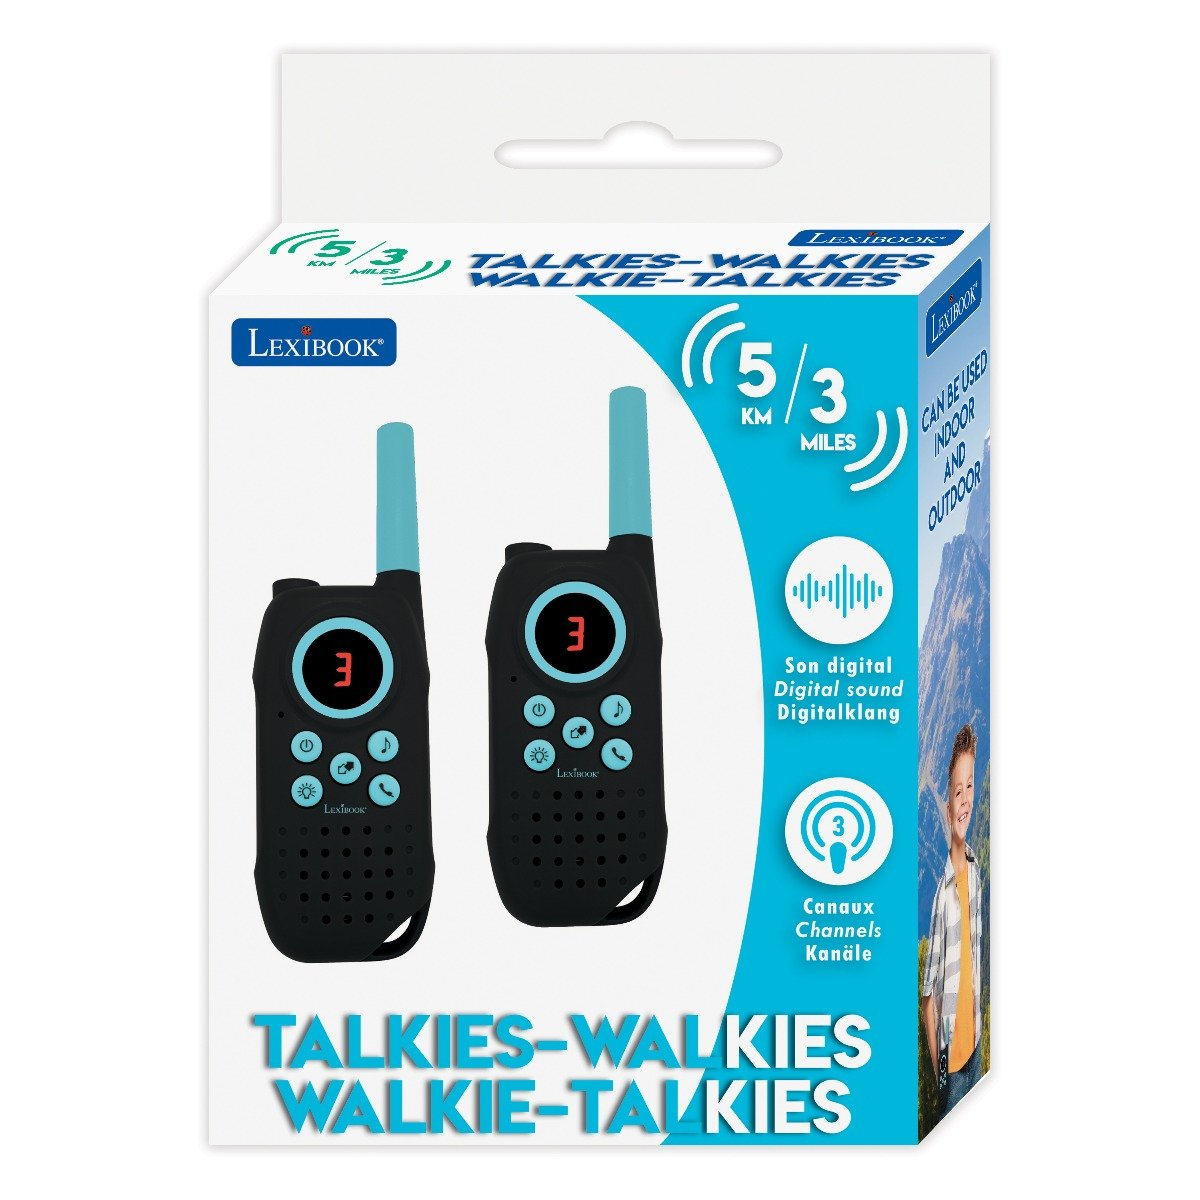 Statie Walkie Talkies Lexibook, 5 km